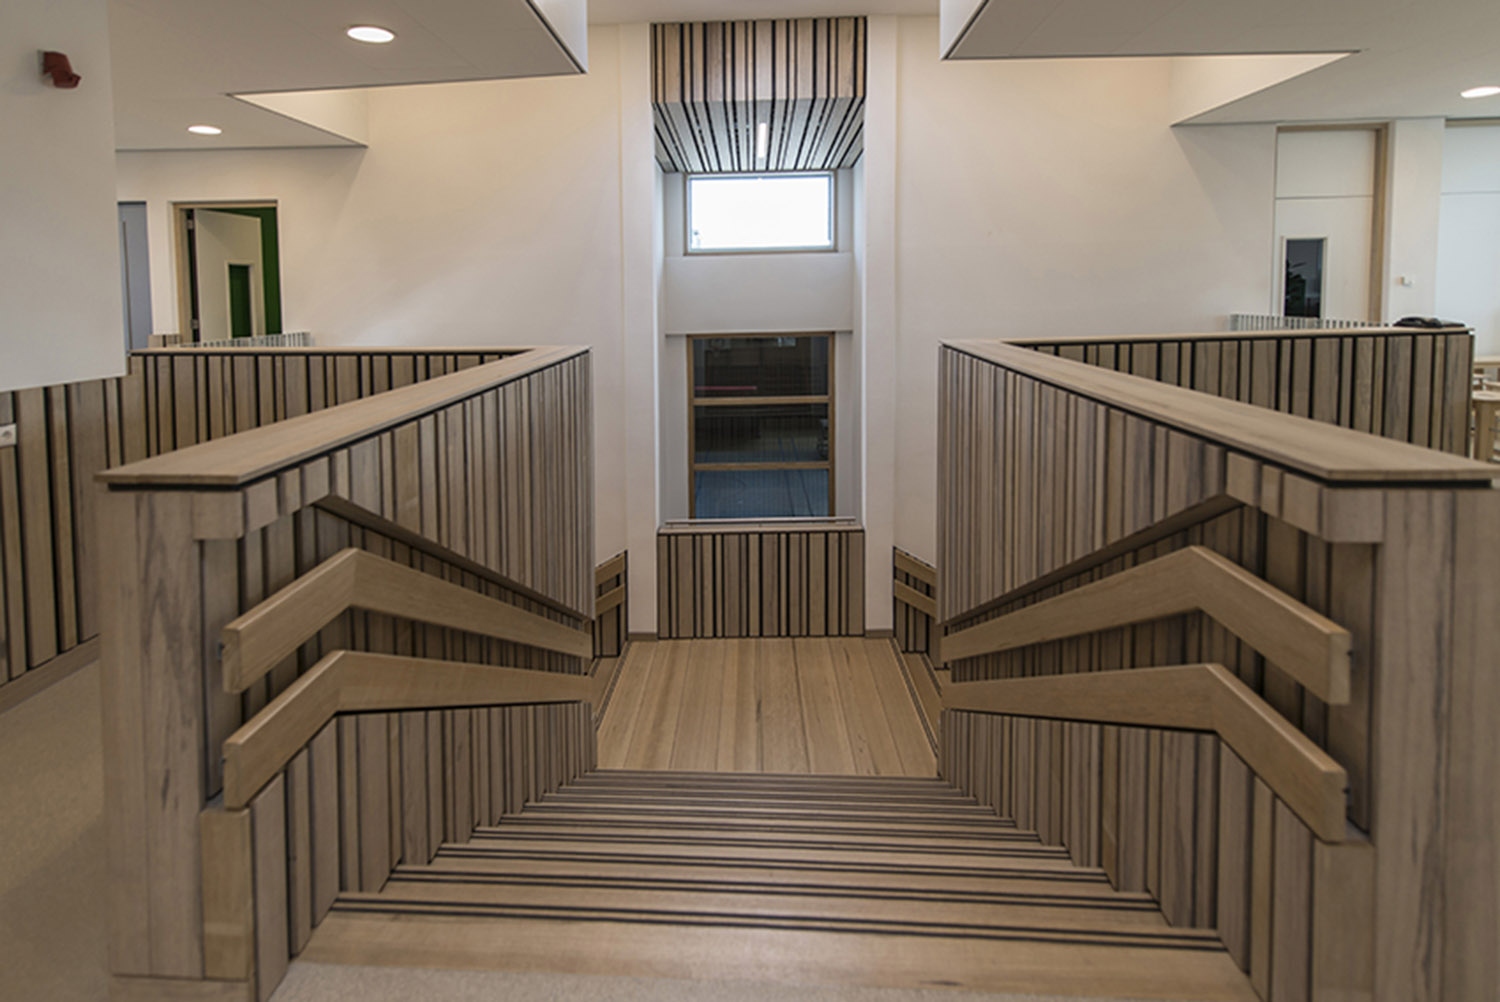 Wood staircase first floor direction ground floor  Daan Dijkmeijer and UArchitects